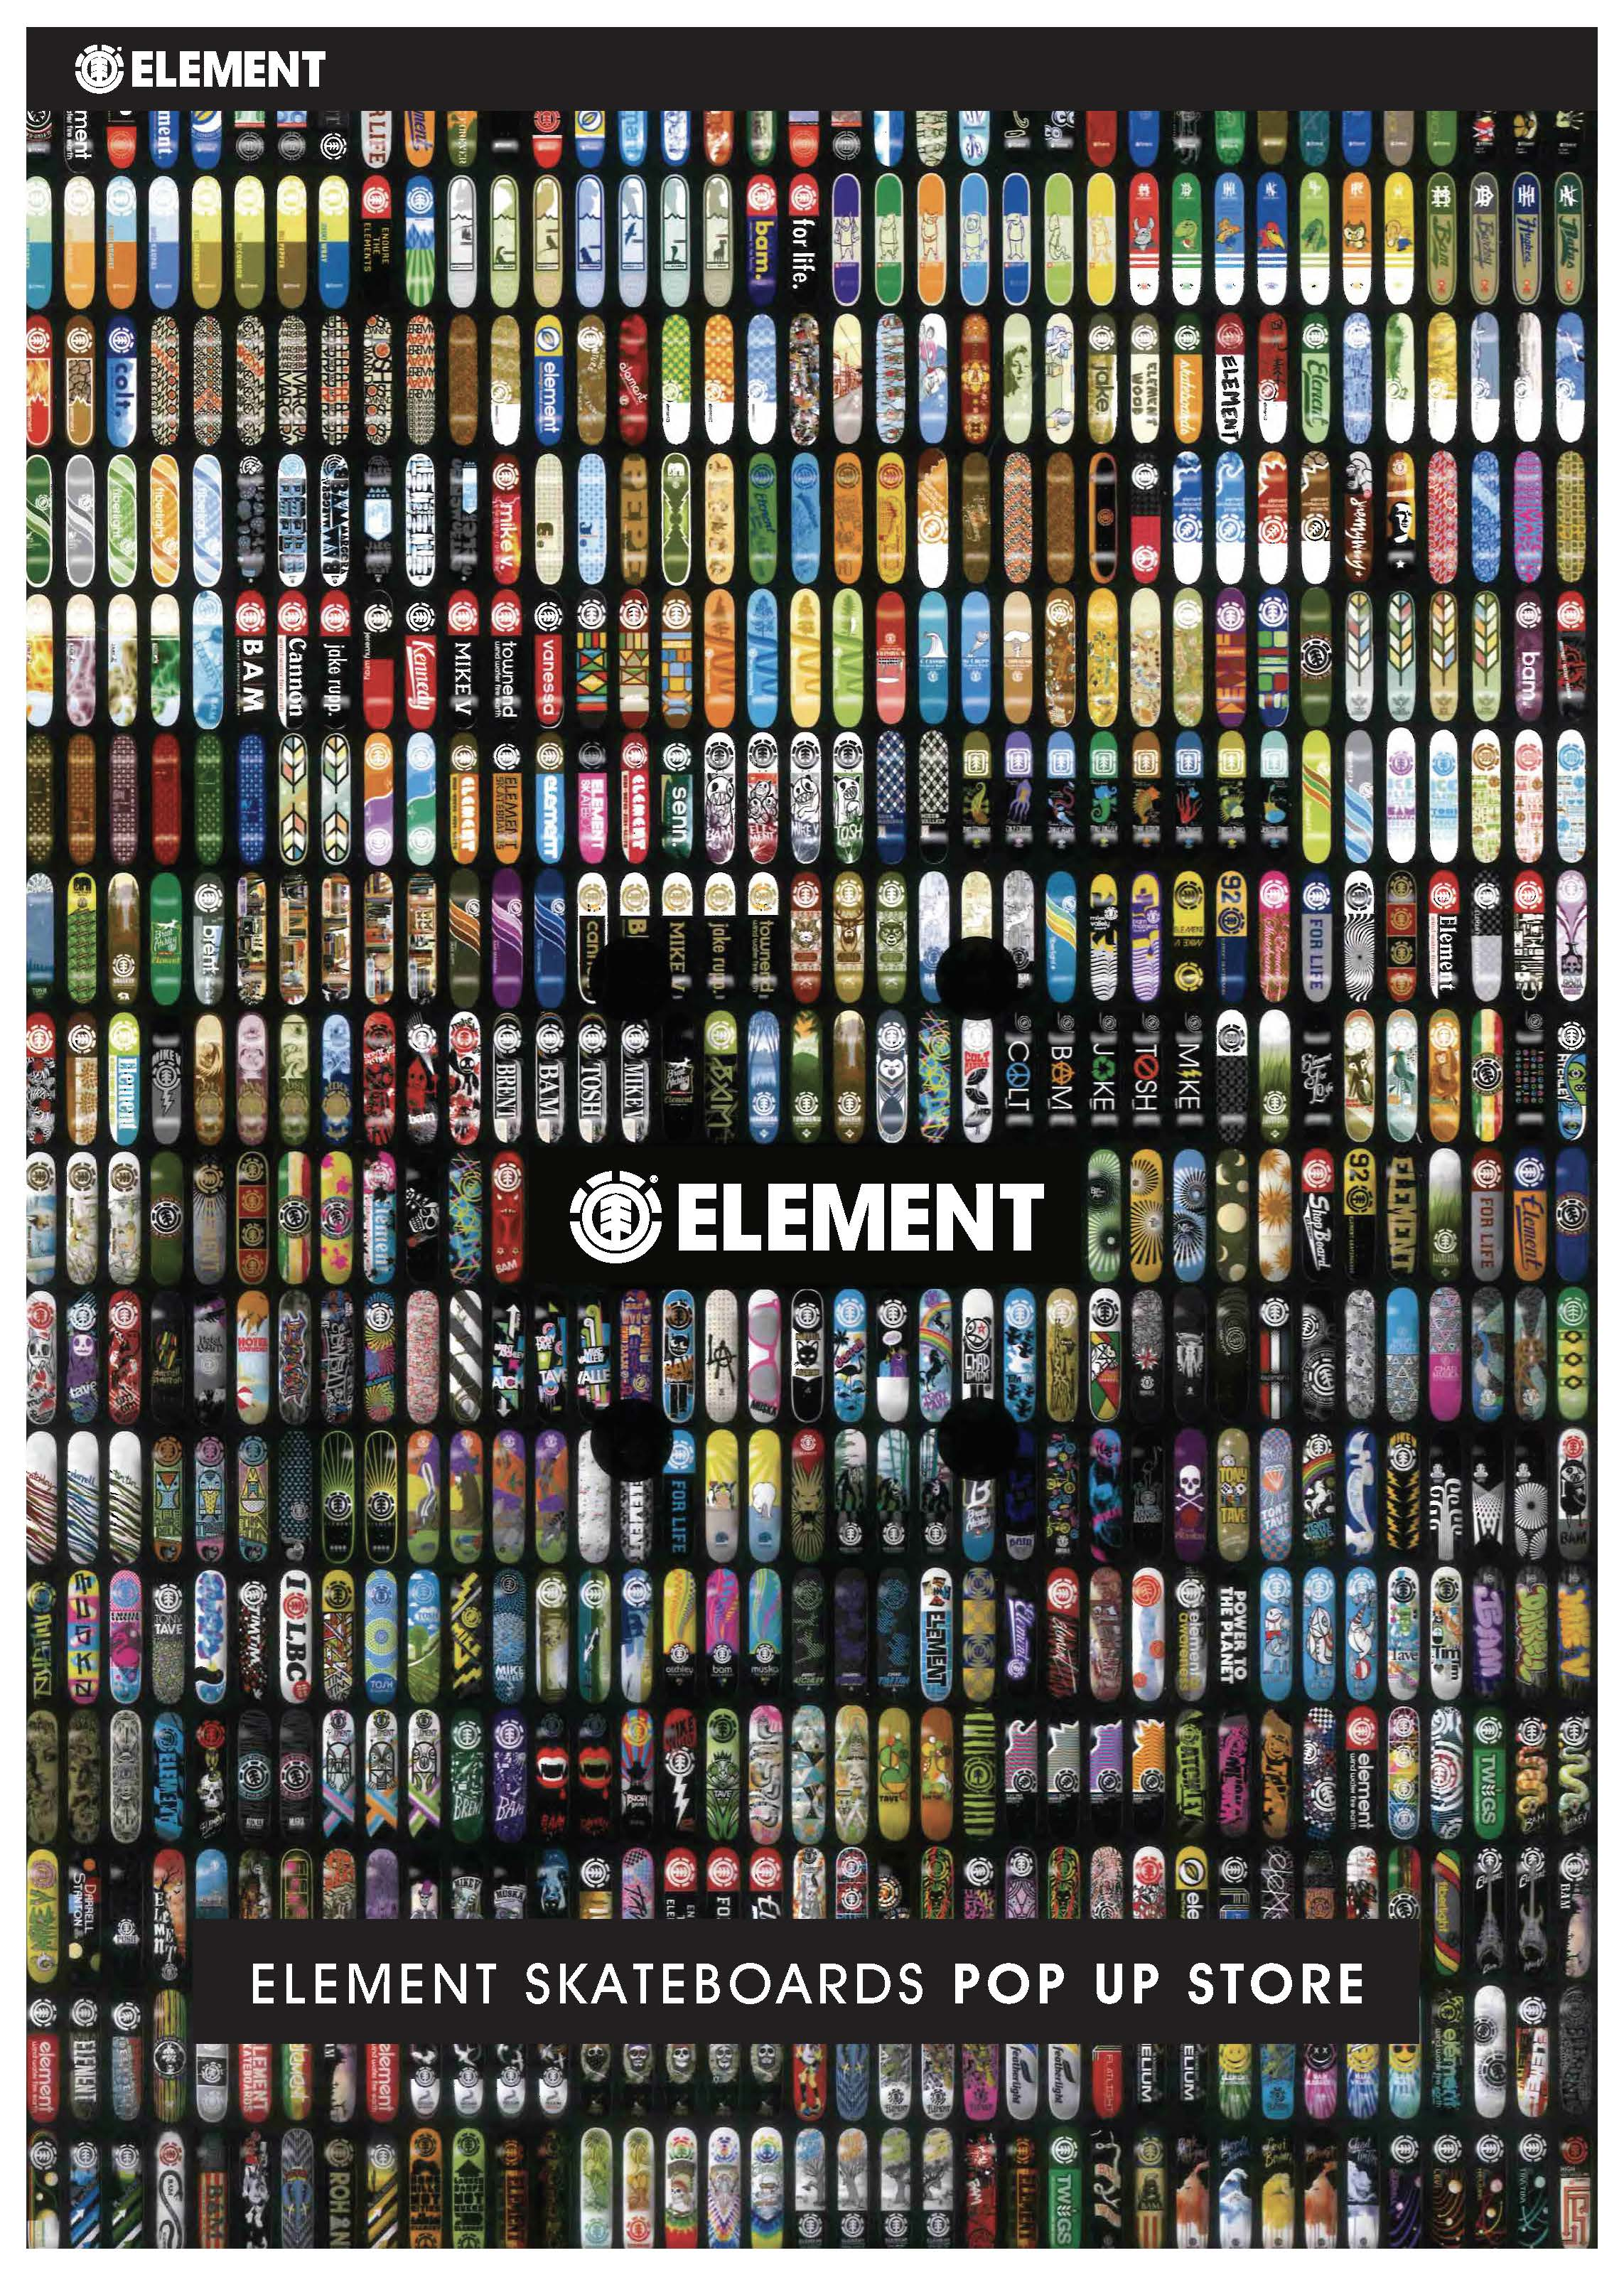 Element Mortar Pop Up Store_PressRelease_ページ_1